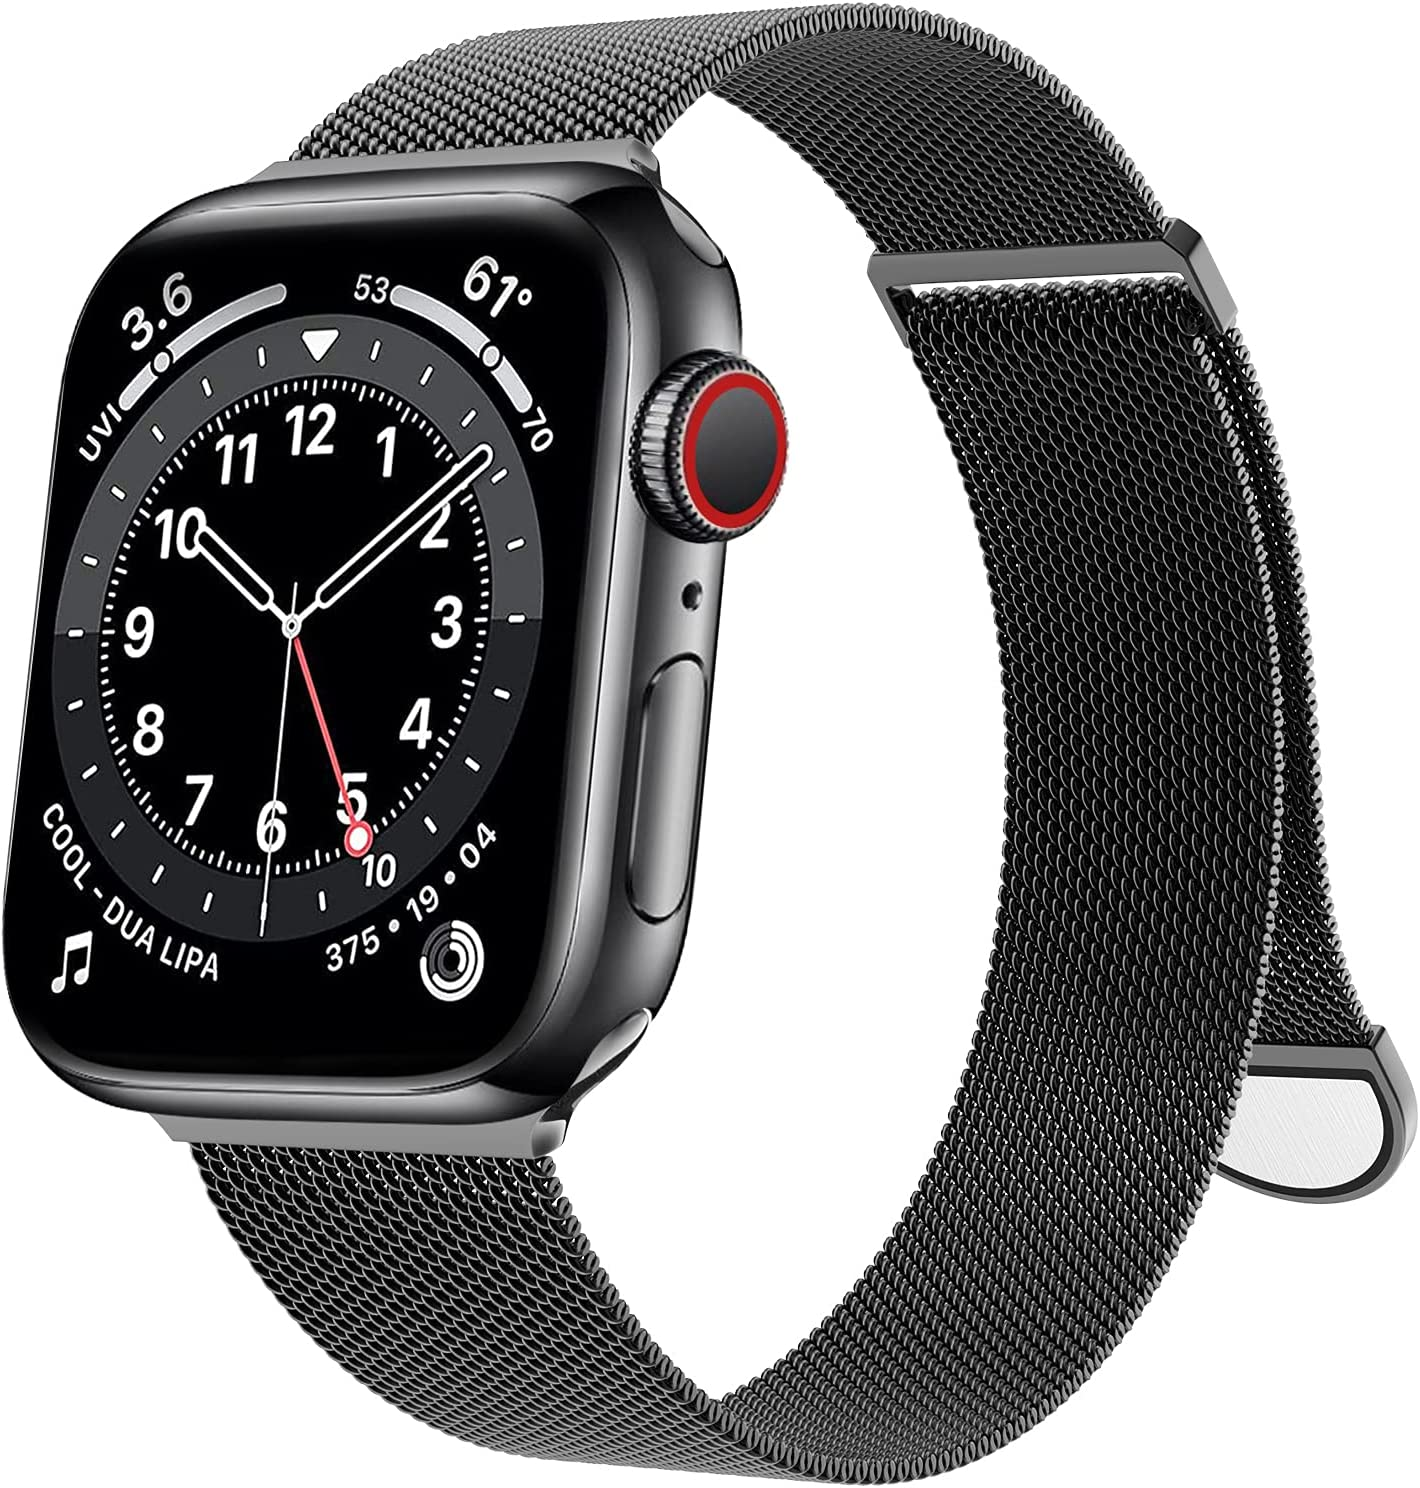 OULUOQI Compatible with Apple Watch Band 38mm 40mm 41mm 42mm 44mm 45mm Women and Men, Stainless Steel Mesh Loop Magnetic Clasp Replacement for iWatch Band Series SE 7 6 5 4 3 2 1 (42mm Black)